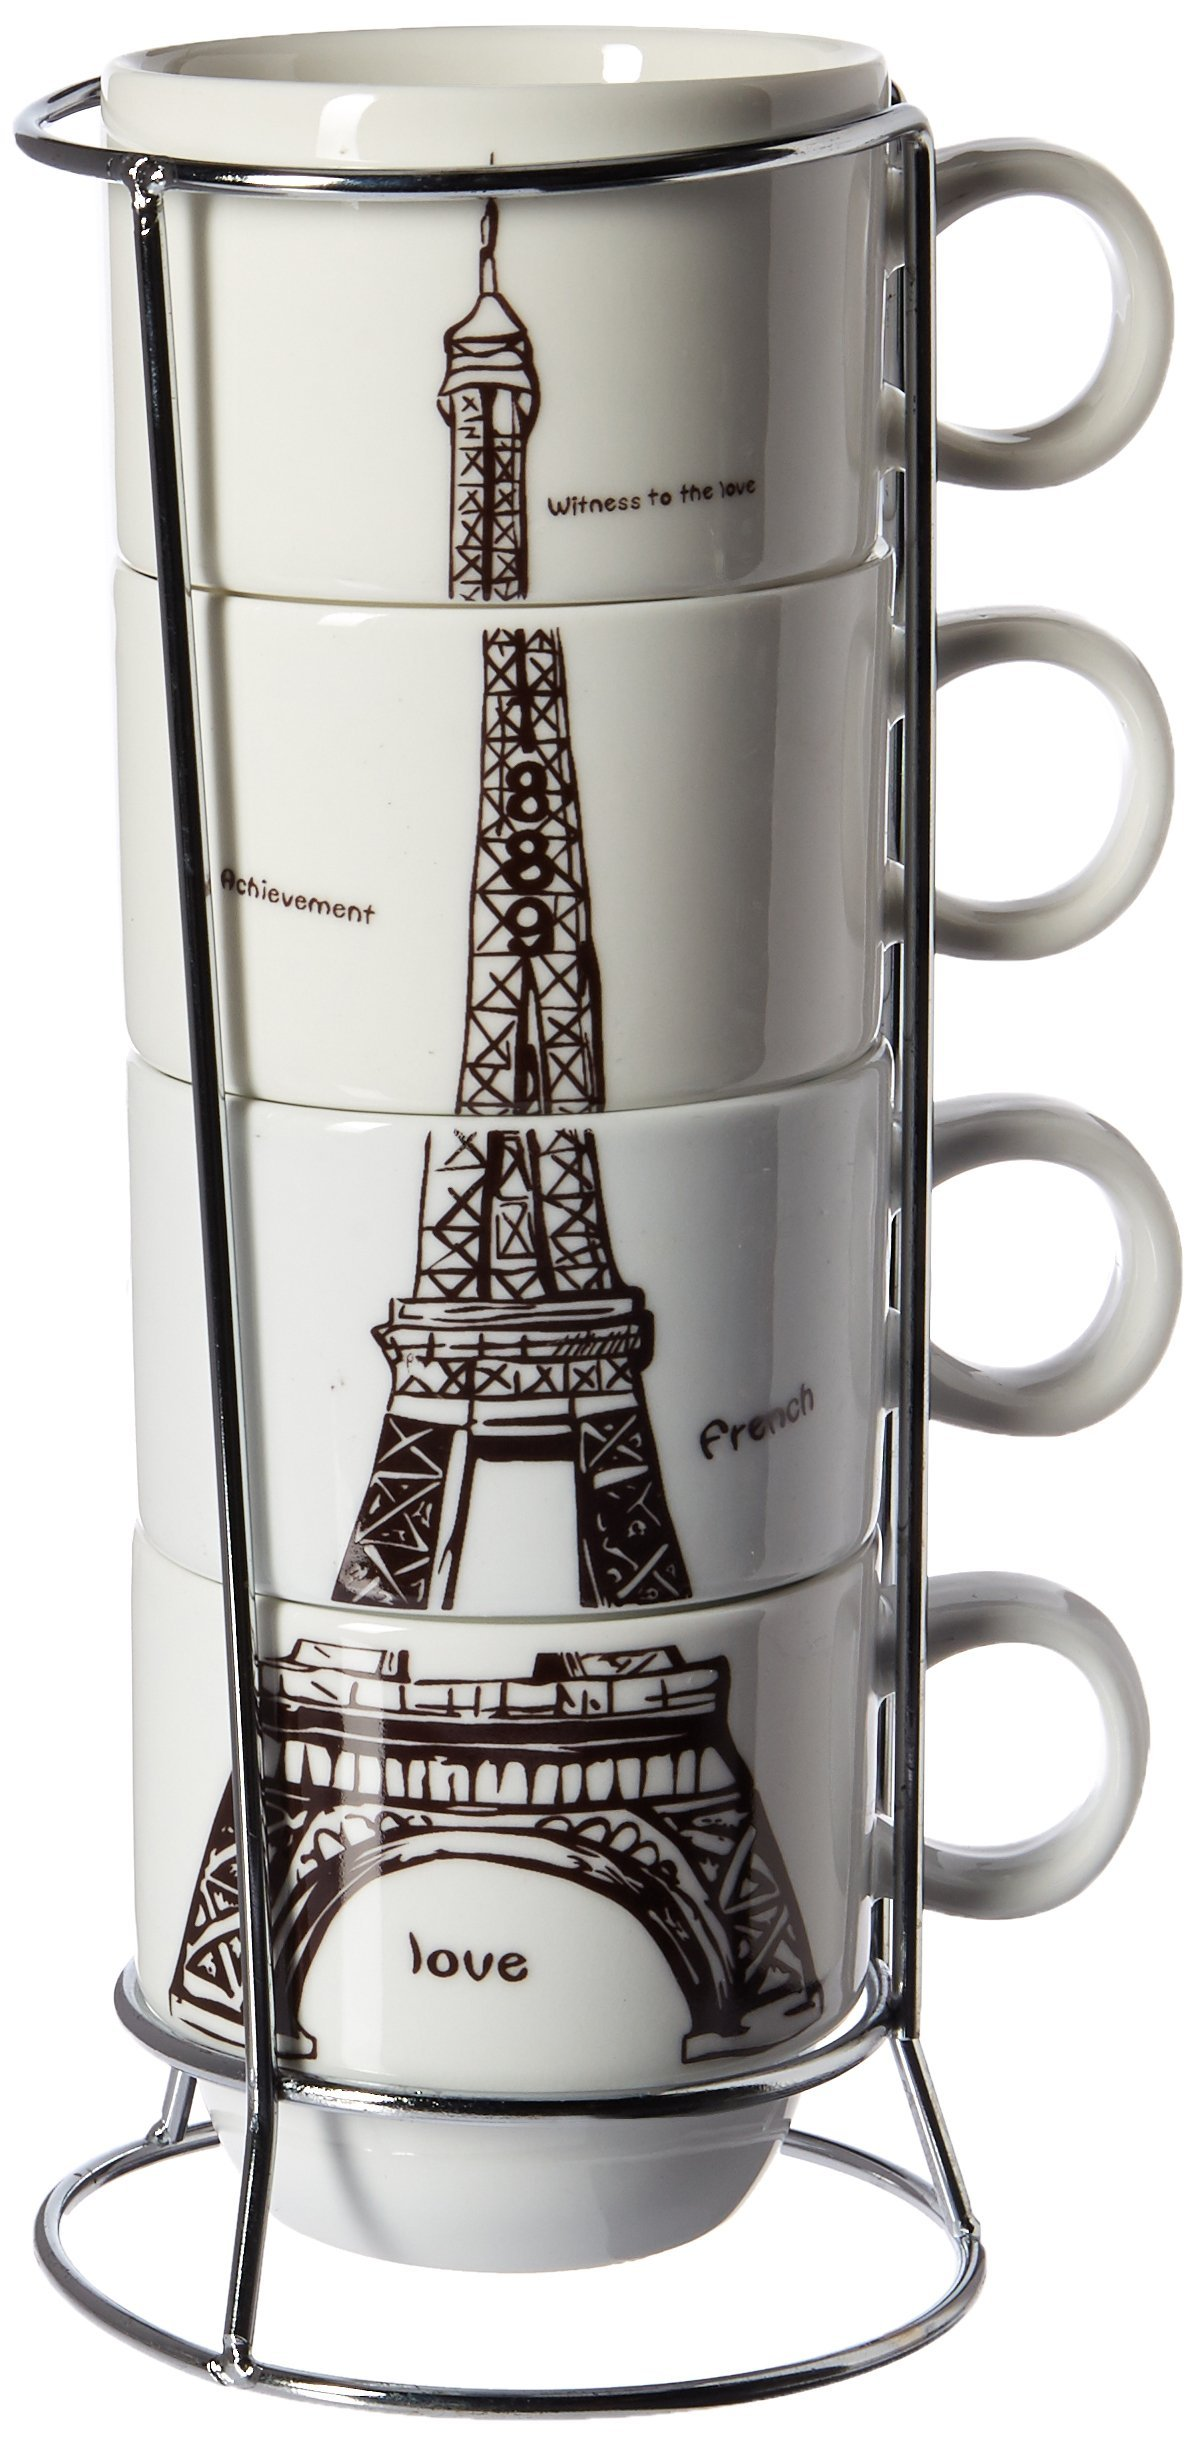 6910 Uniware Chic Eiffel Tower Paris Stacking Porcelain Expresso Coffee Mug with Stainless Steel Frame (Set of 4)